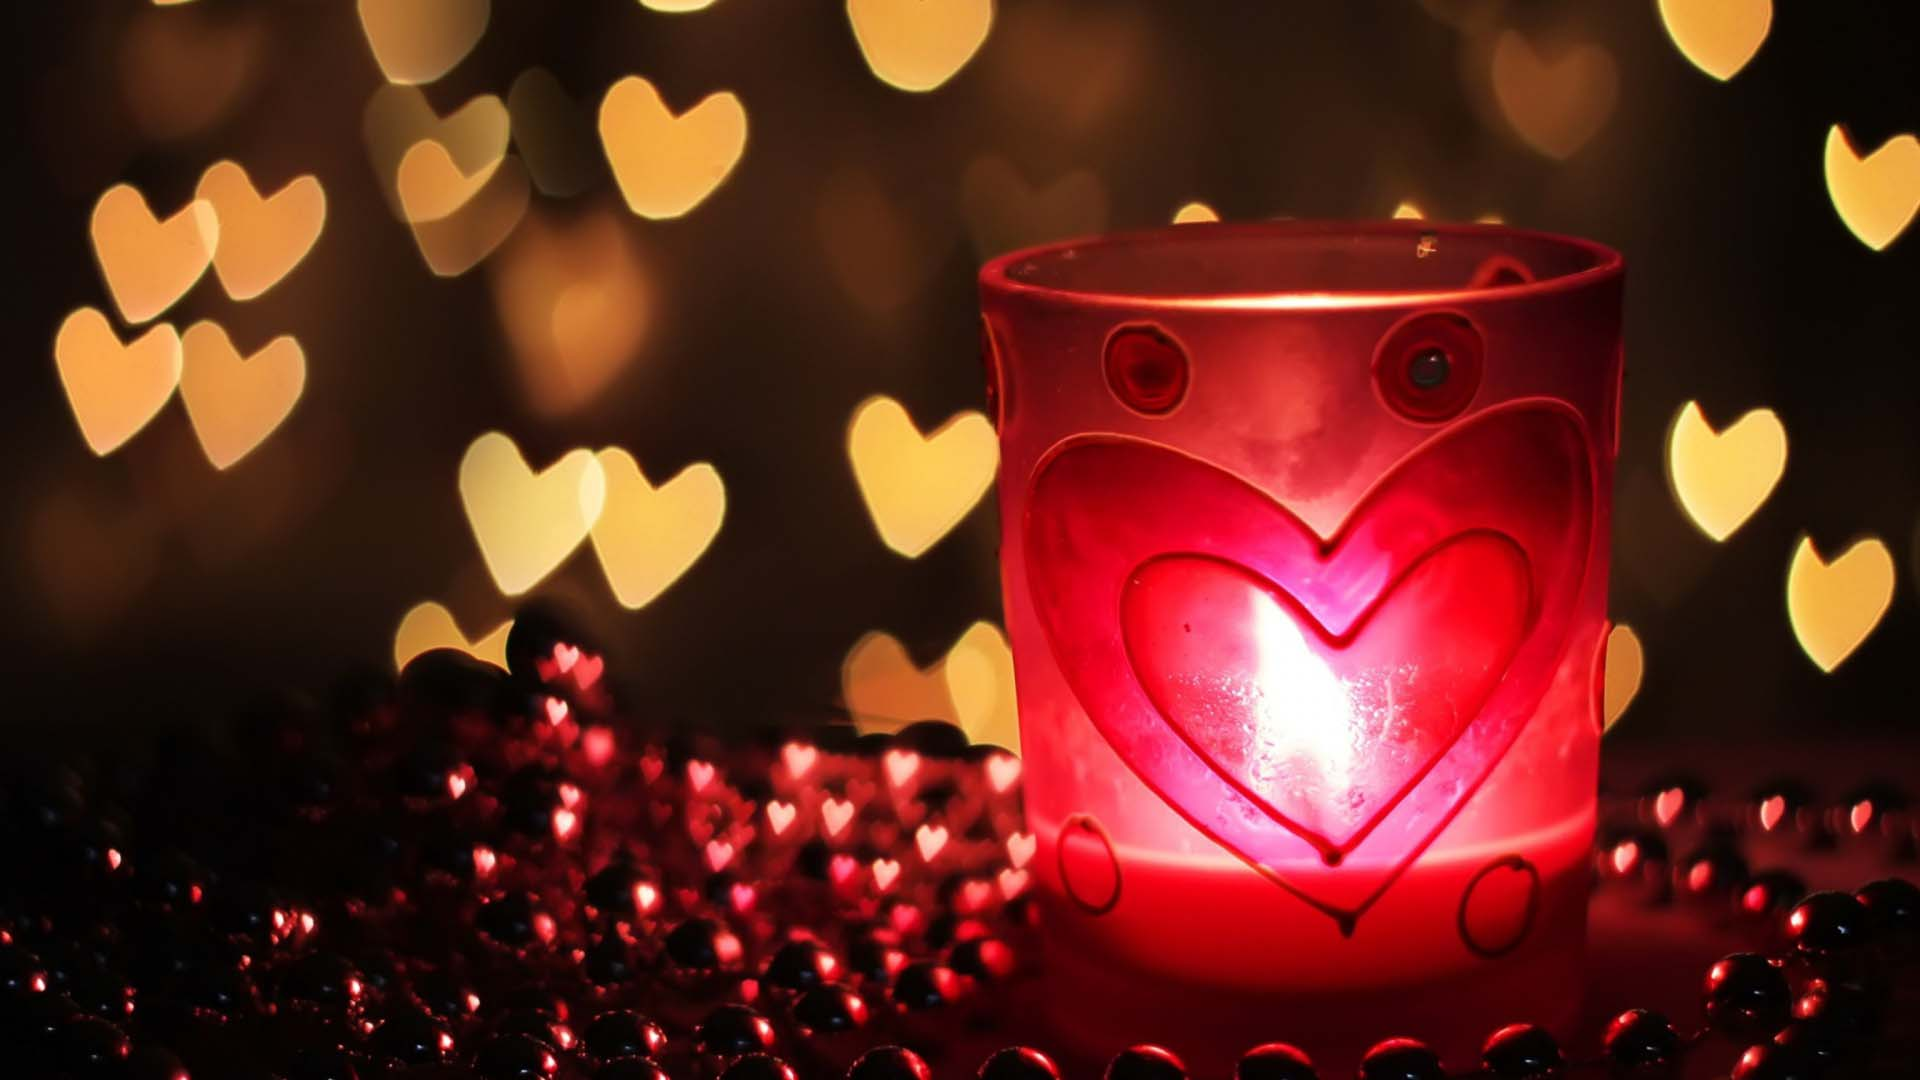 Candle Love Latest HD Wallpapers Free Download 10w640